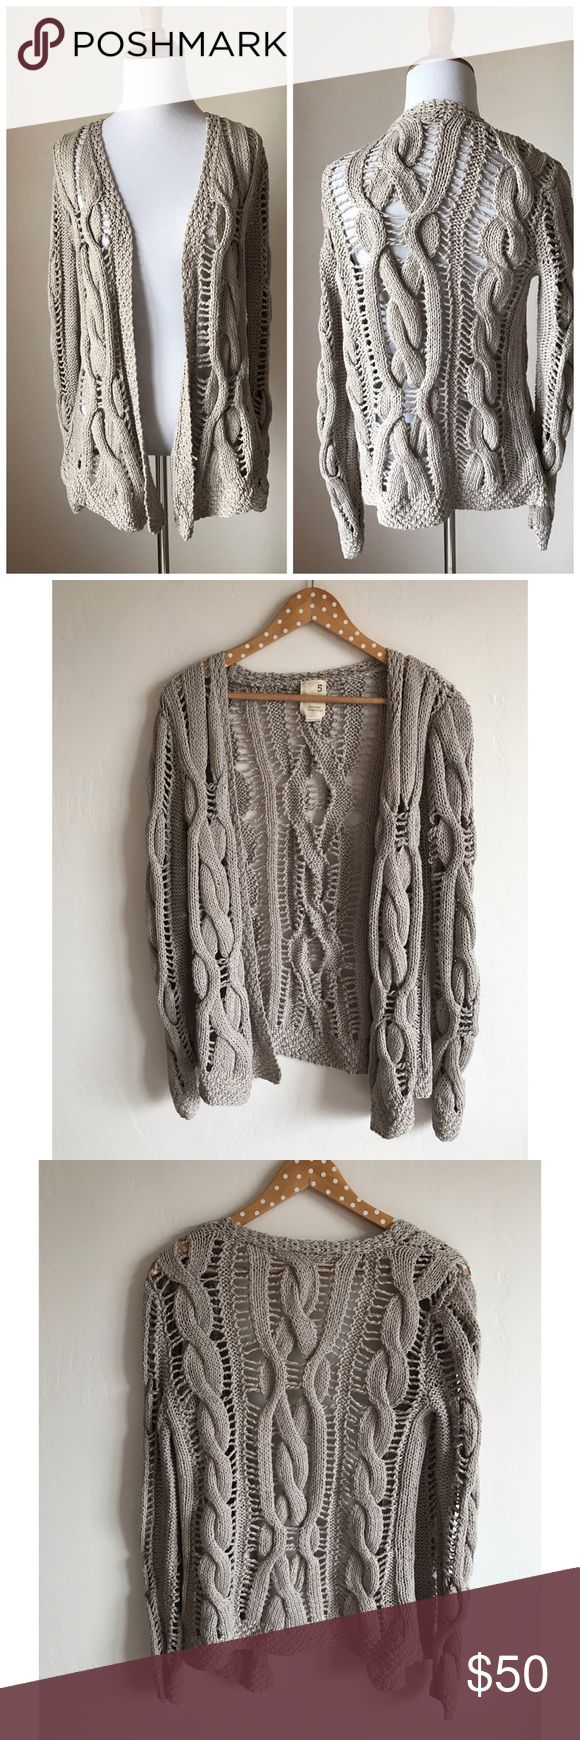 NWOT Anthropologie Open Weave Cardigan Open weave design • Label is Far Away From Close - sold at Anthropologie Anthropologie Sweaters